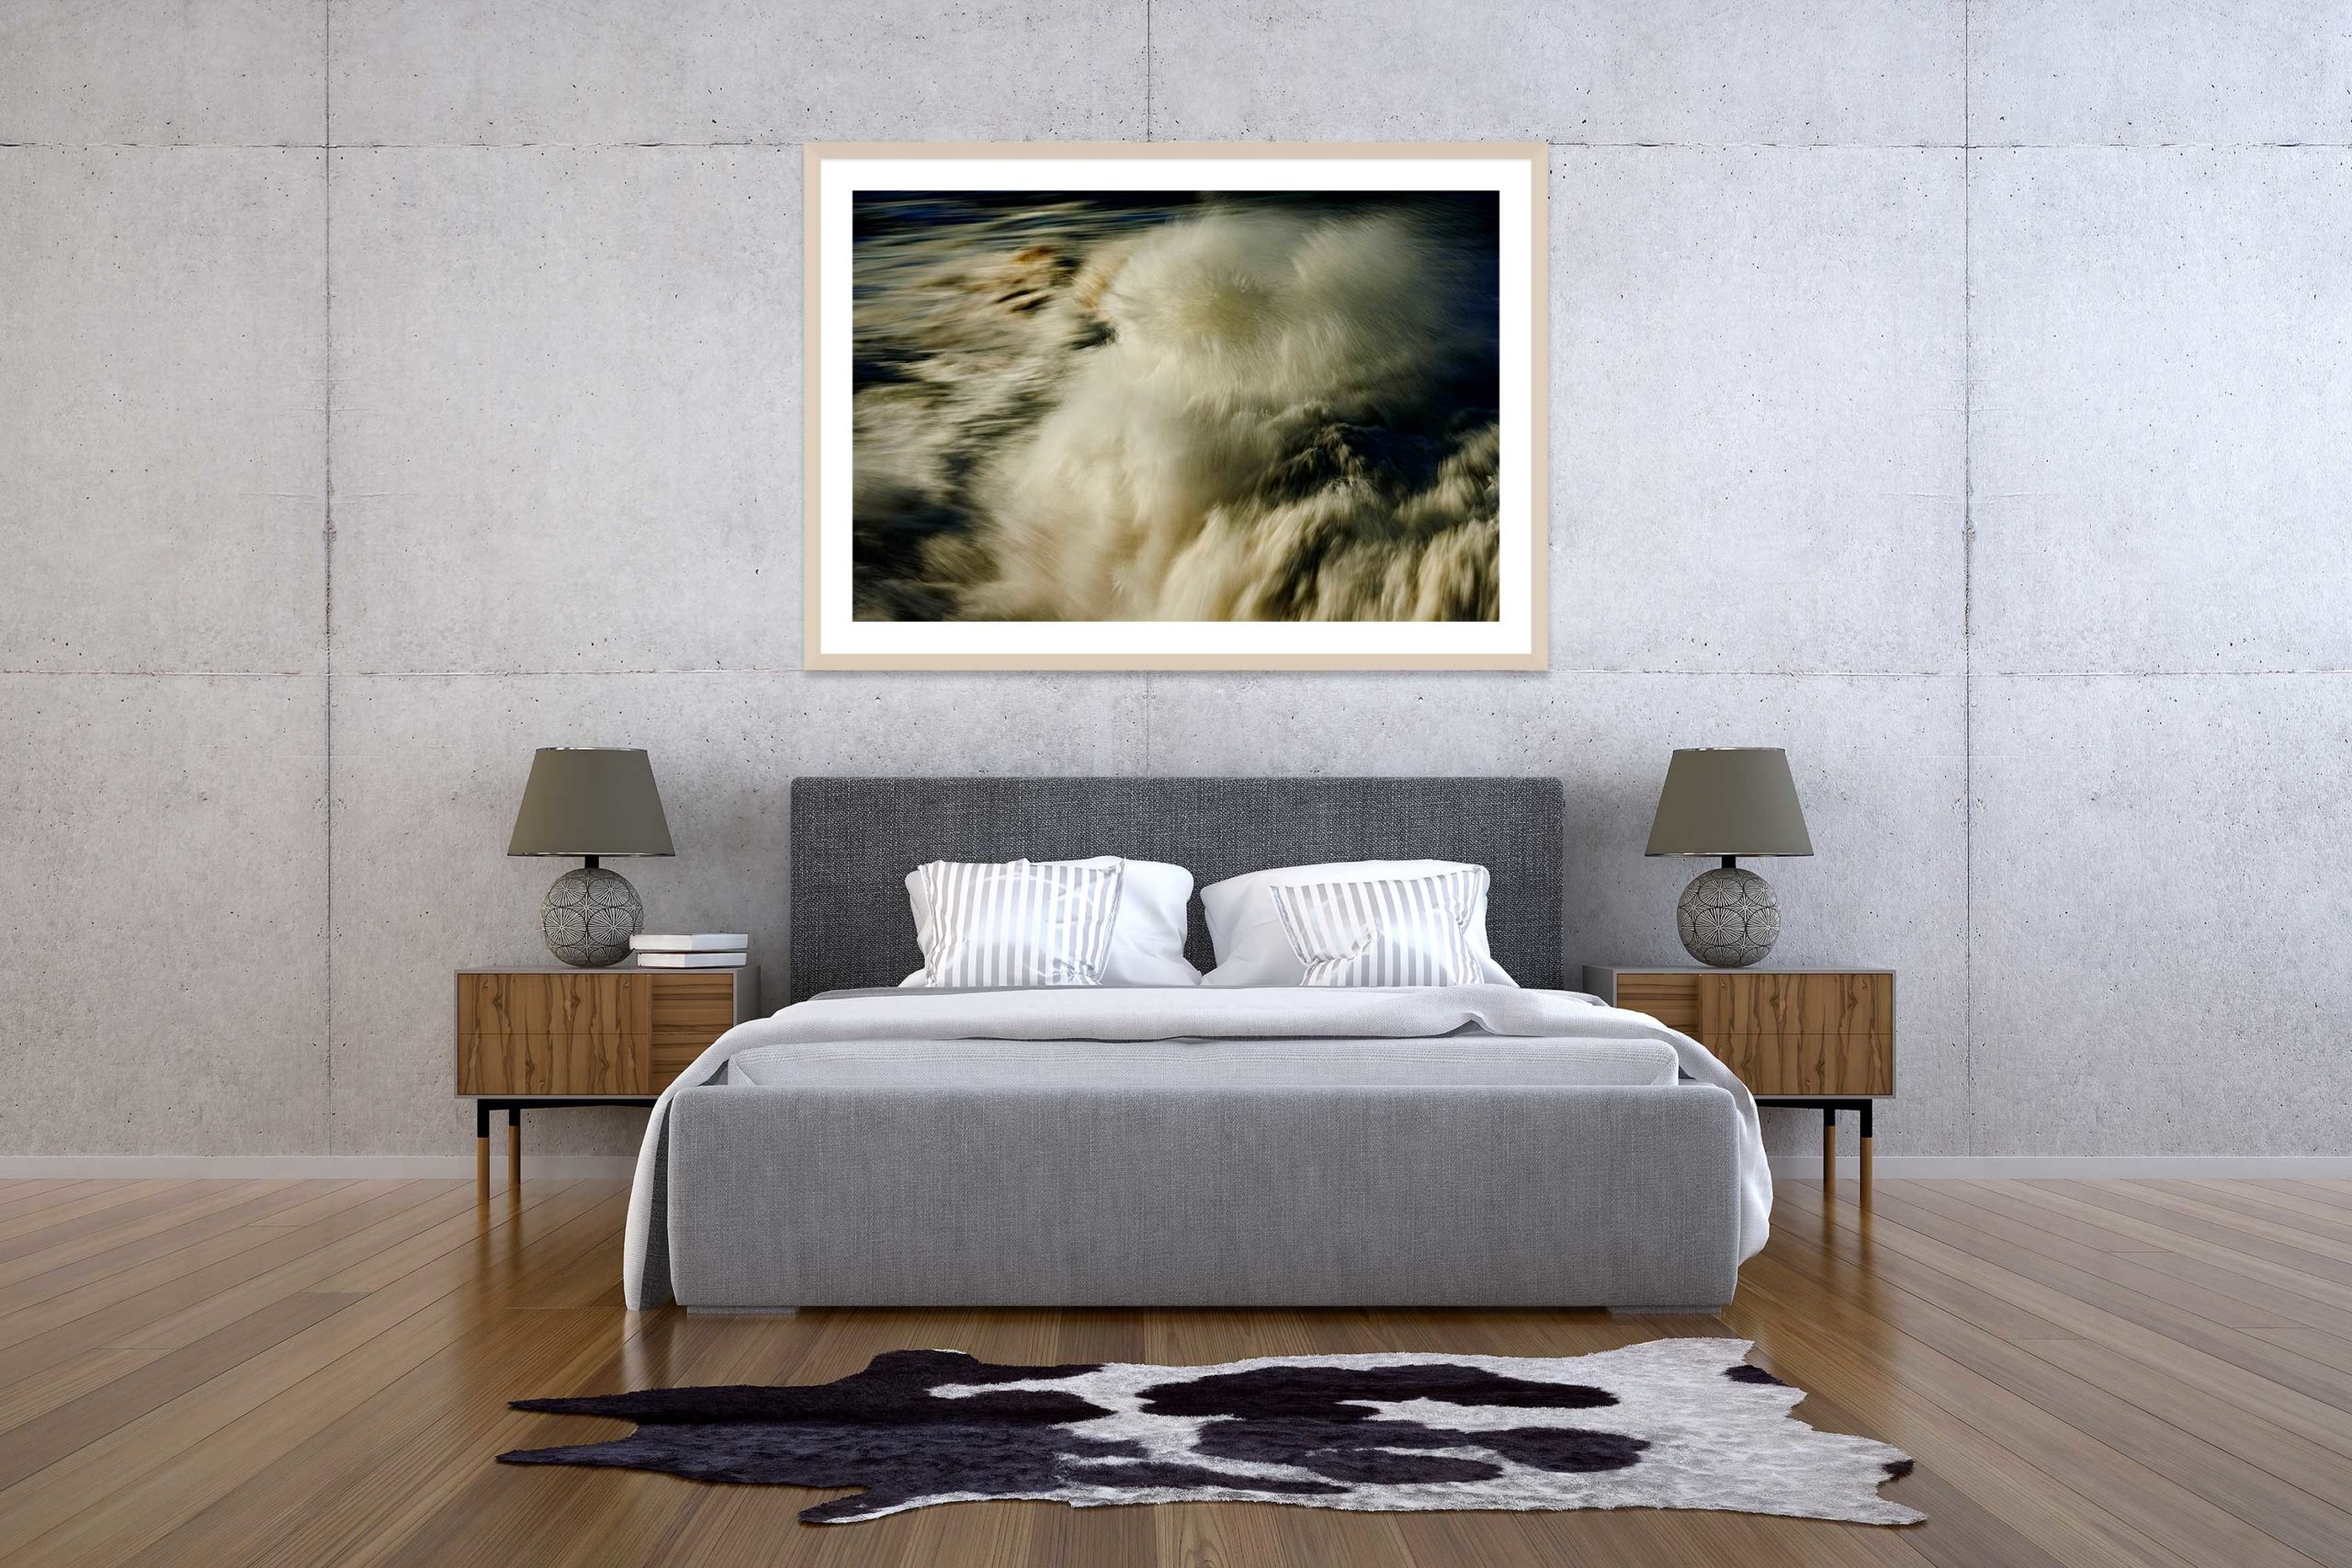 The Storm 3 - Timber Frame - The Storm Collection - Fine Art Photography by Toby Dixon